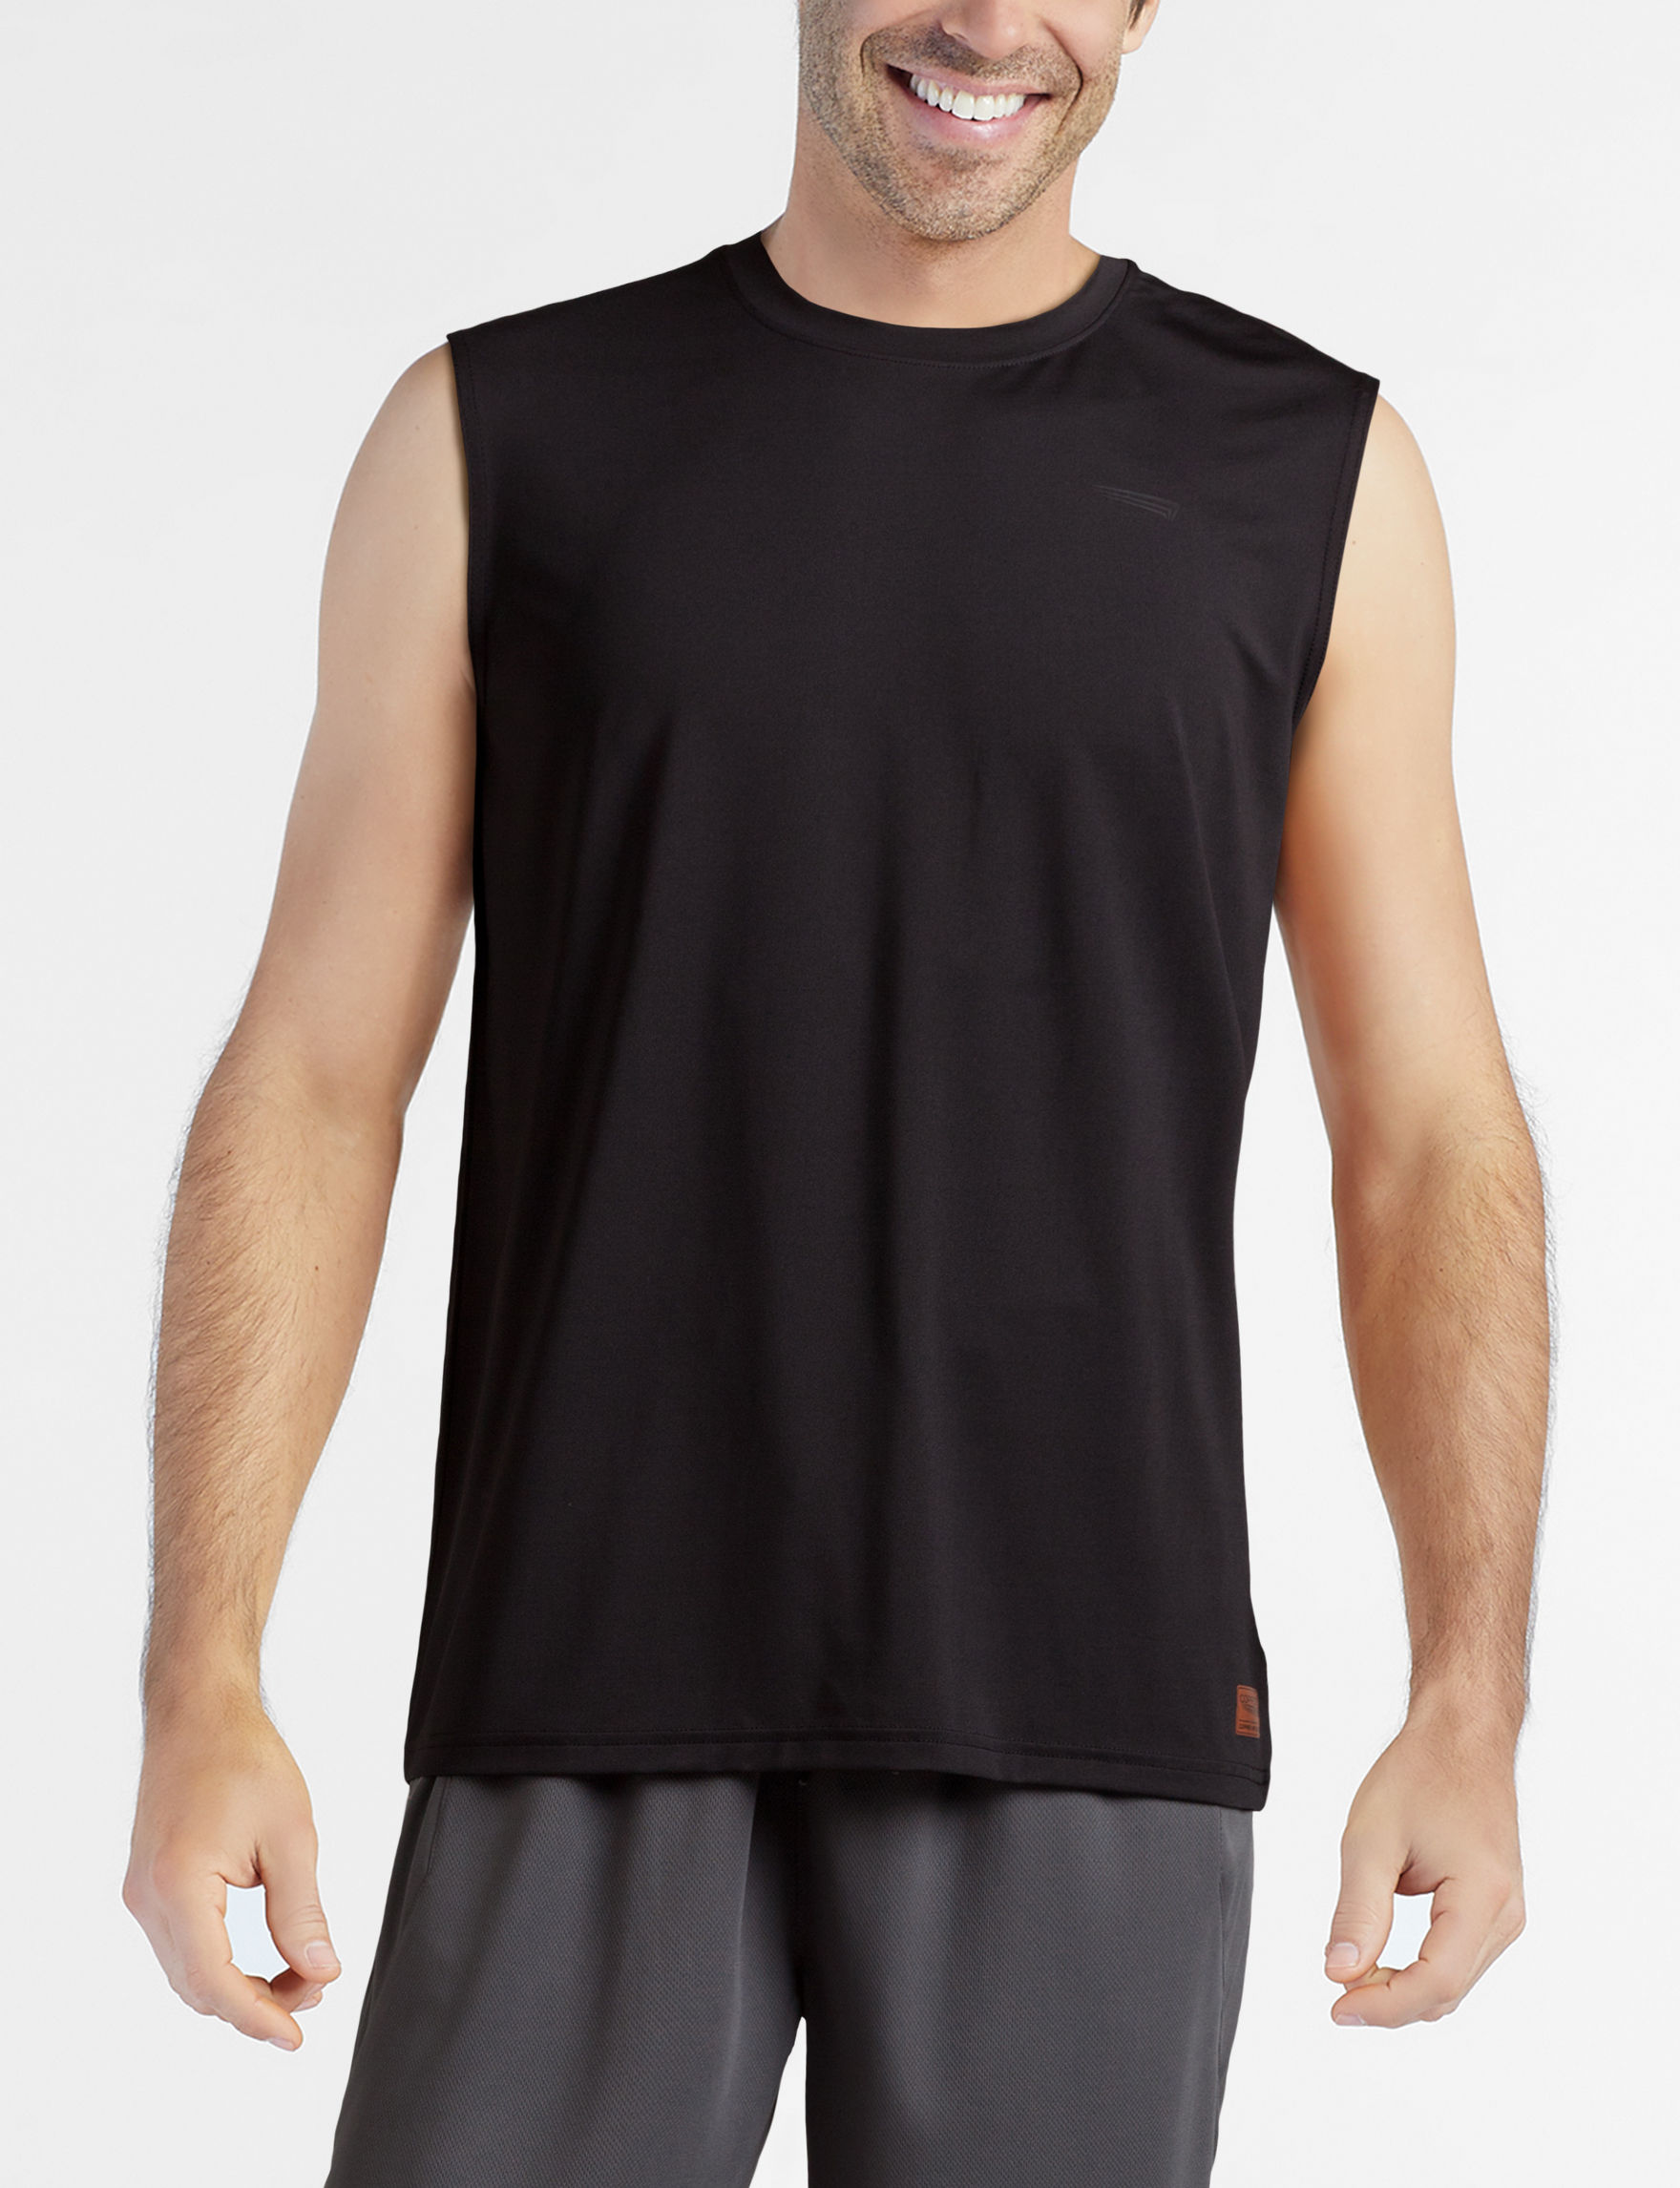 Copper Fit Black Tees & Tanks